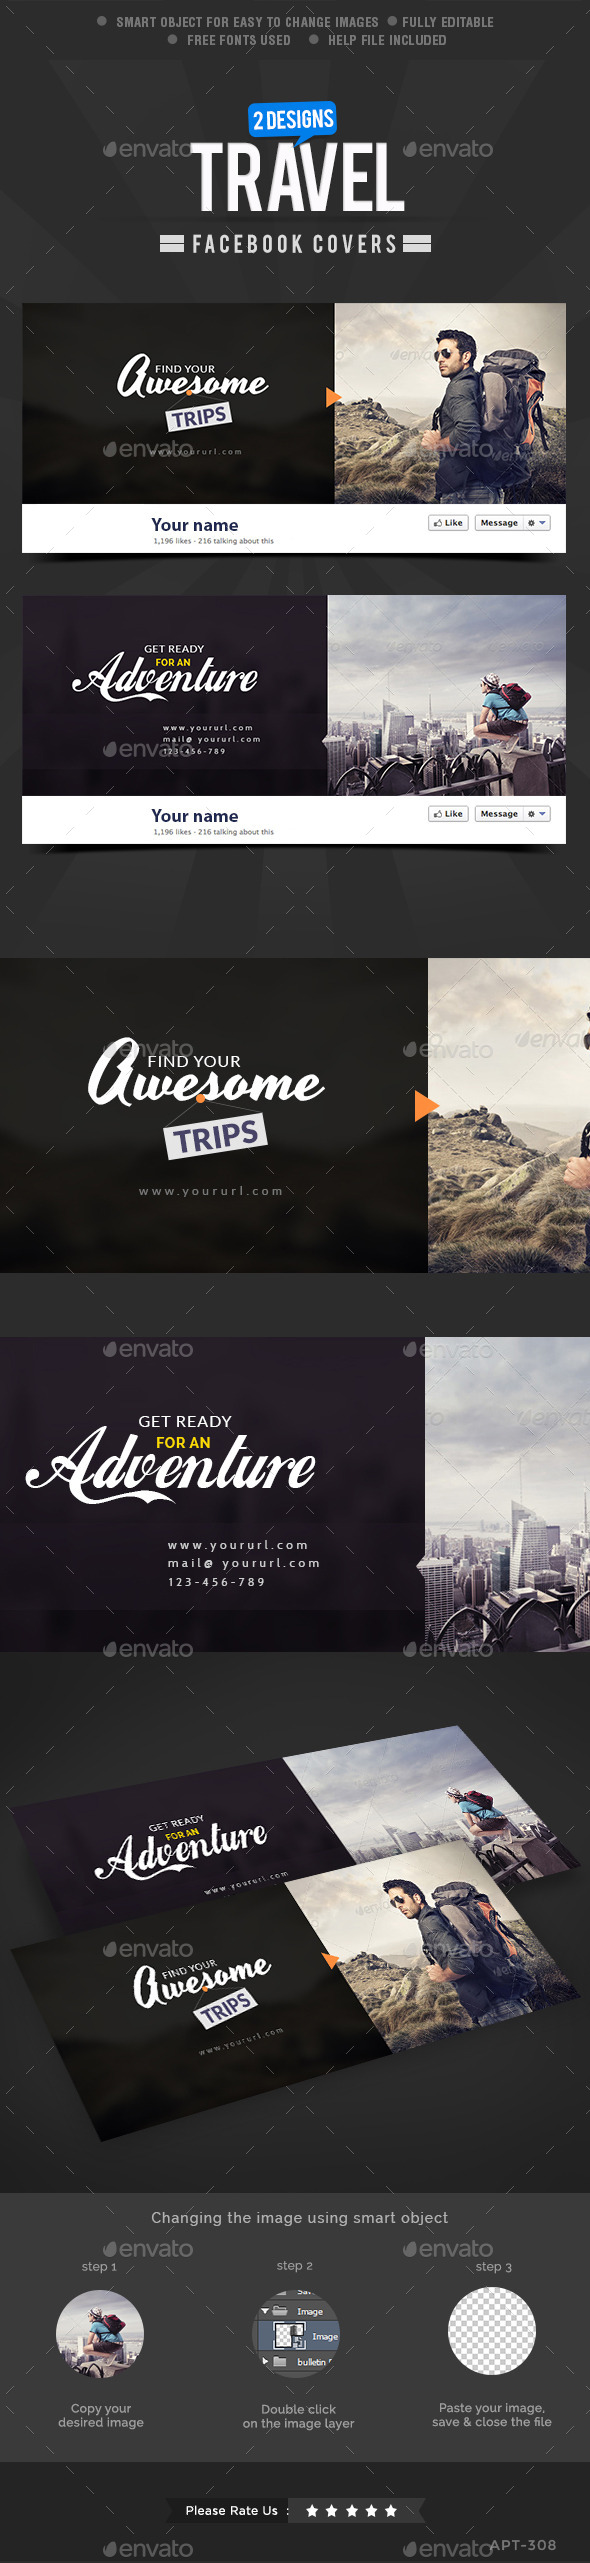 GraphicRiver 2 Travel Facebook Covers 10089273